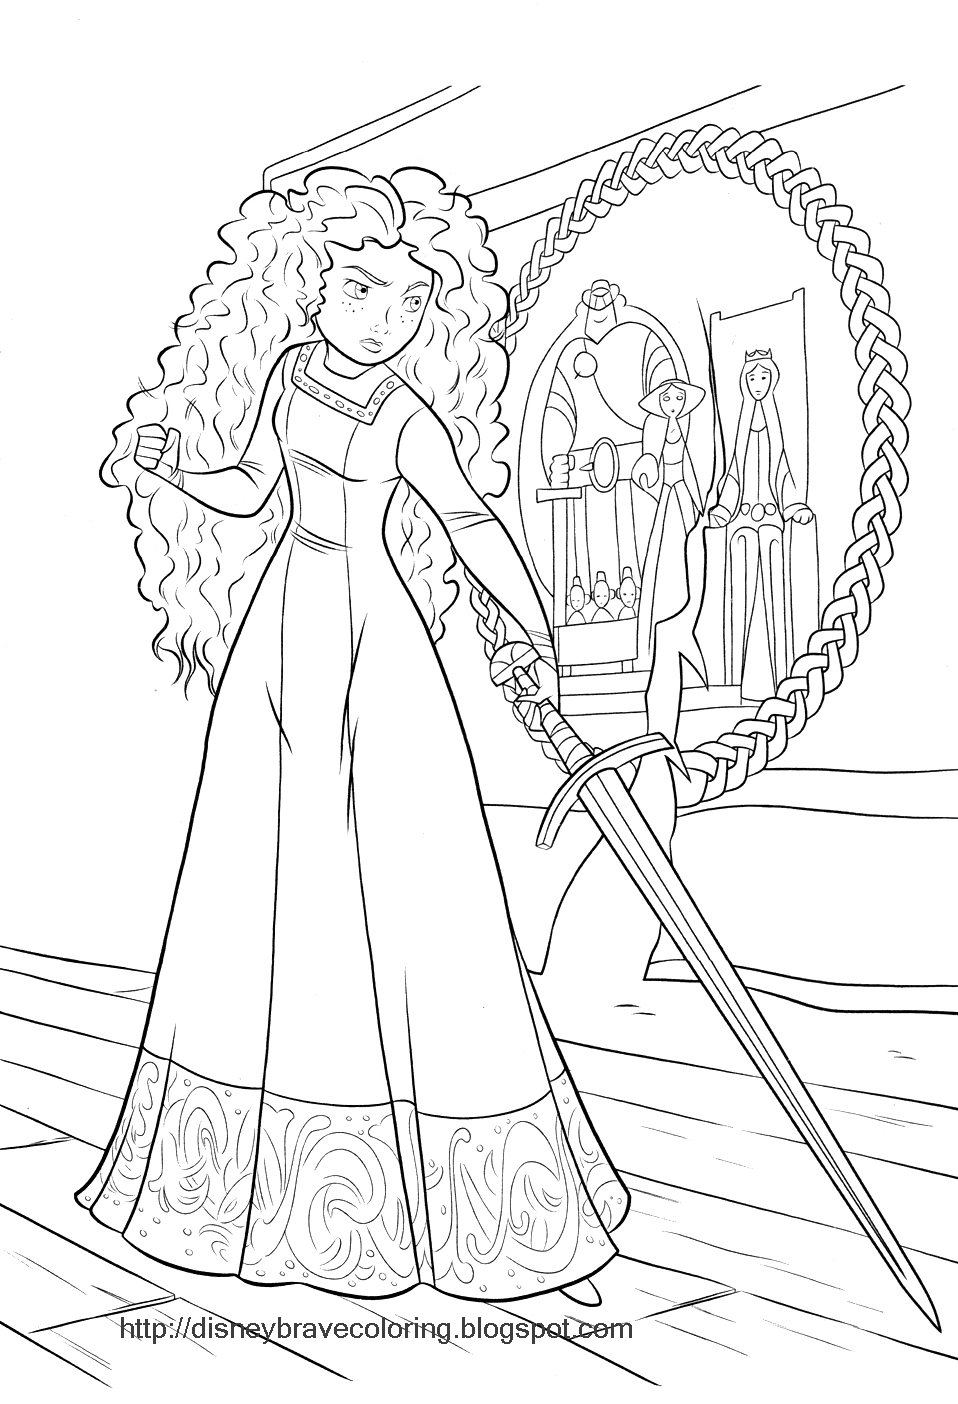 Brave (Movie) coloring #13, Download drawings